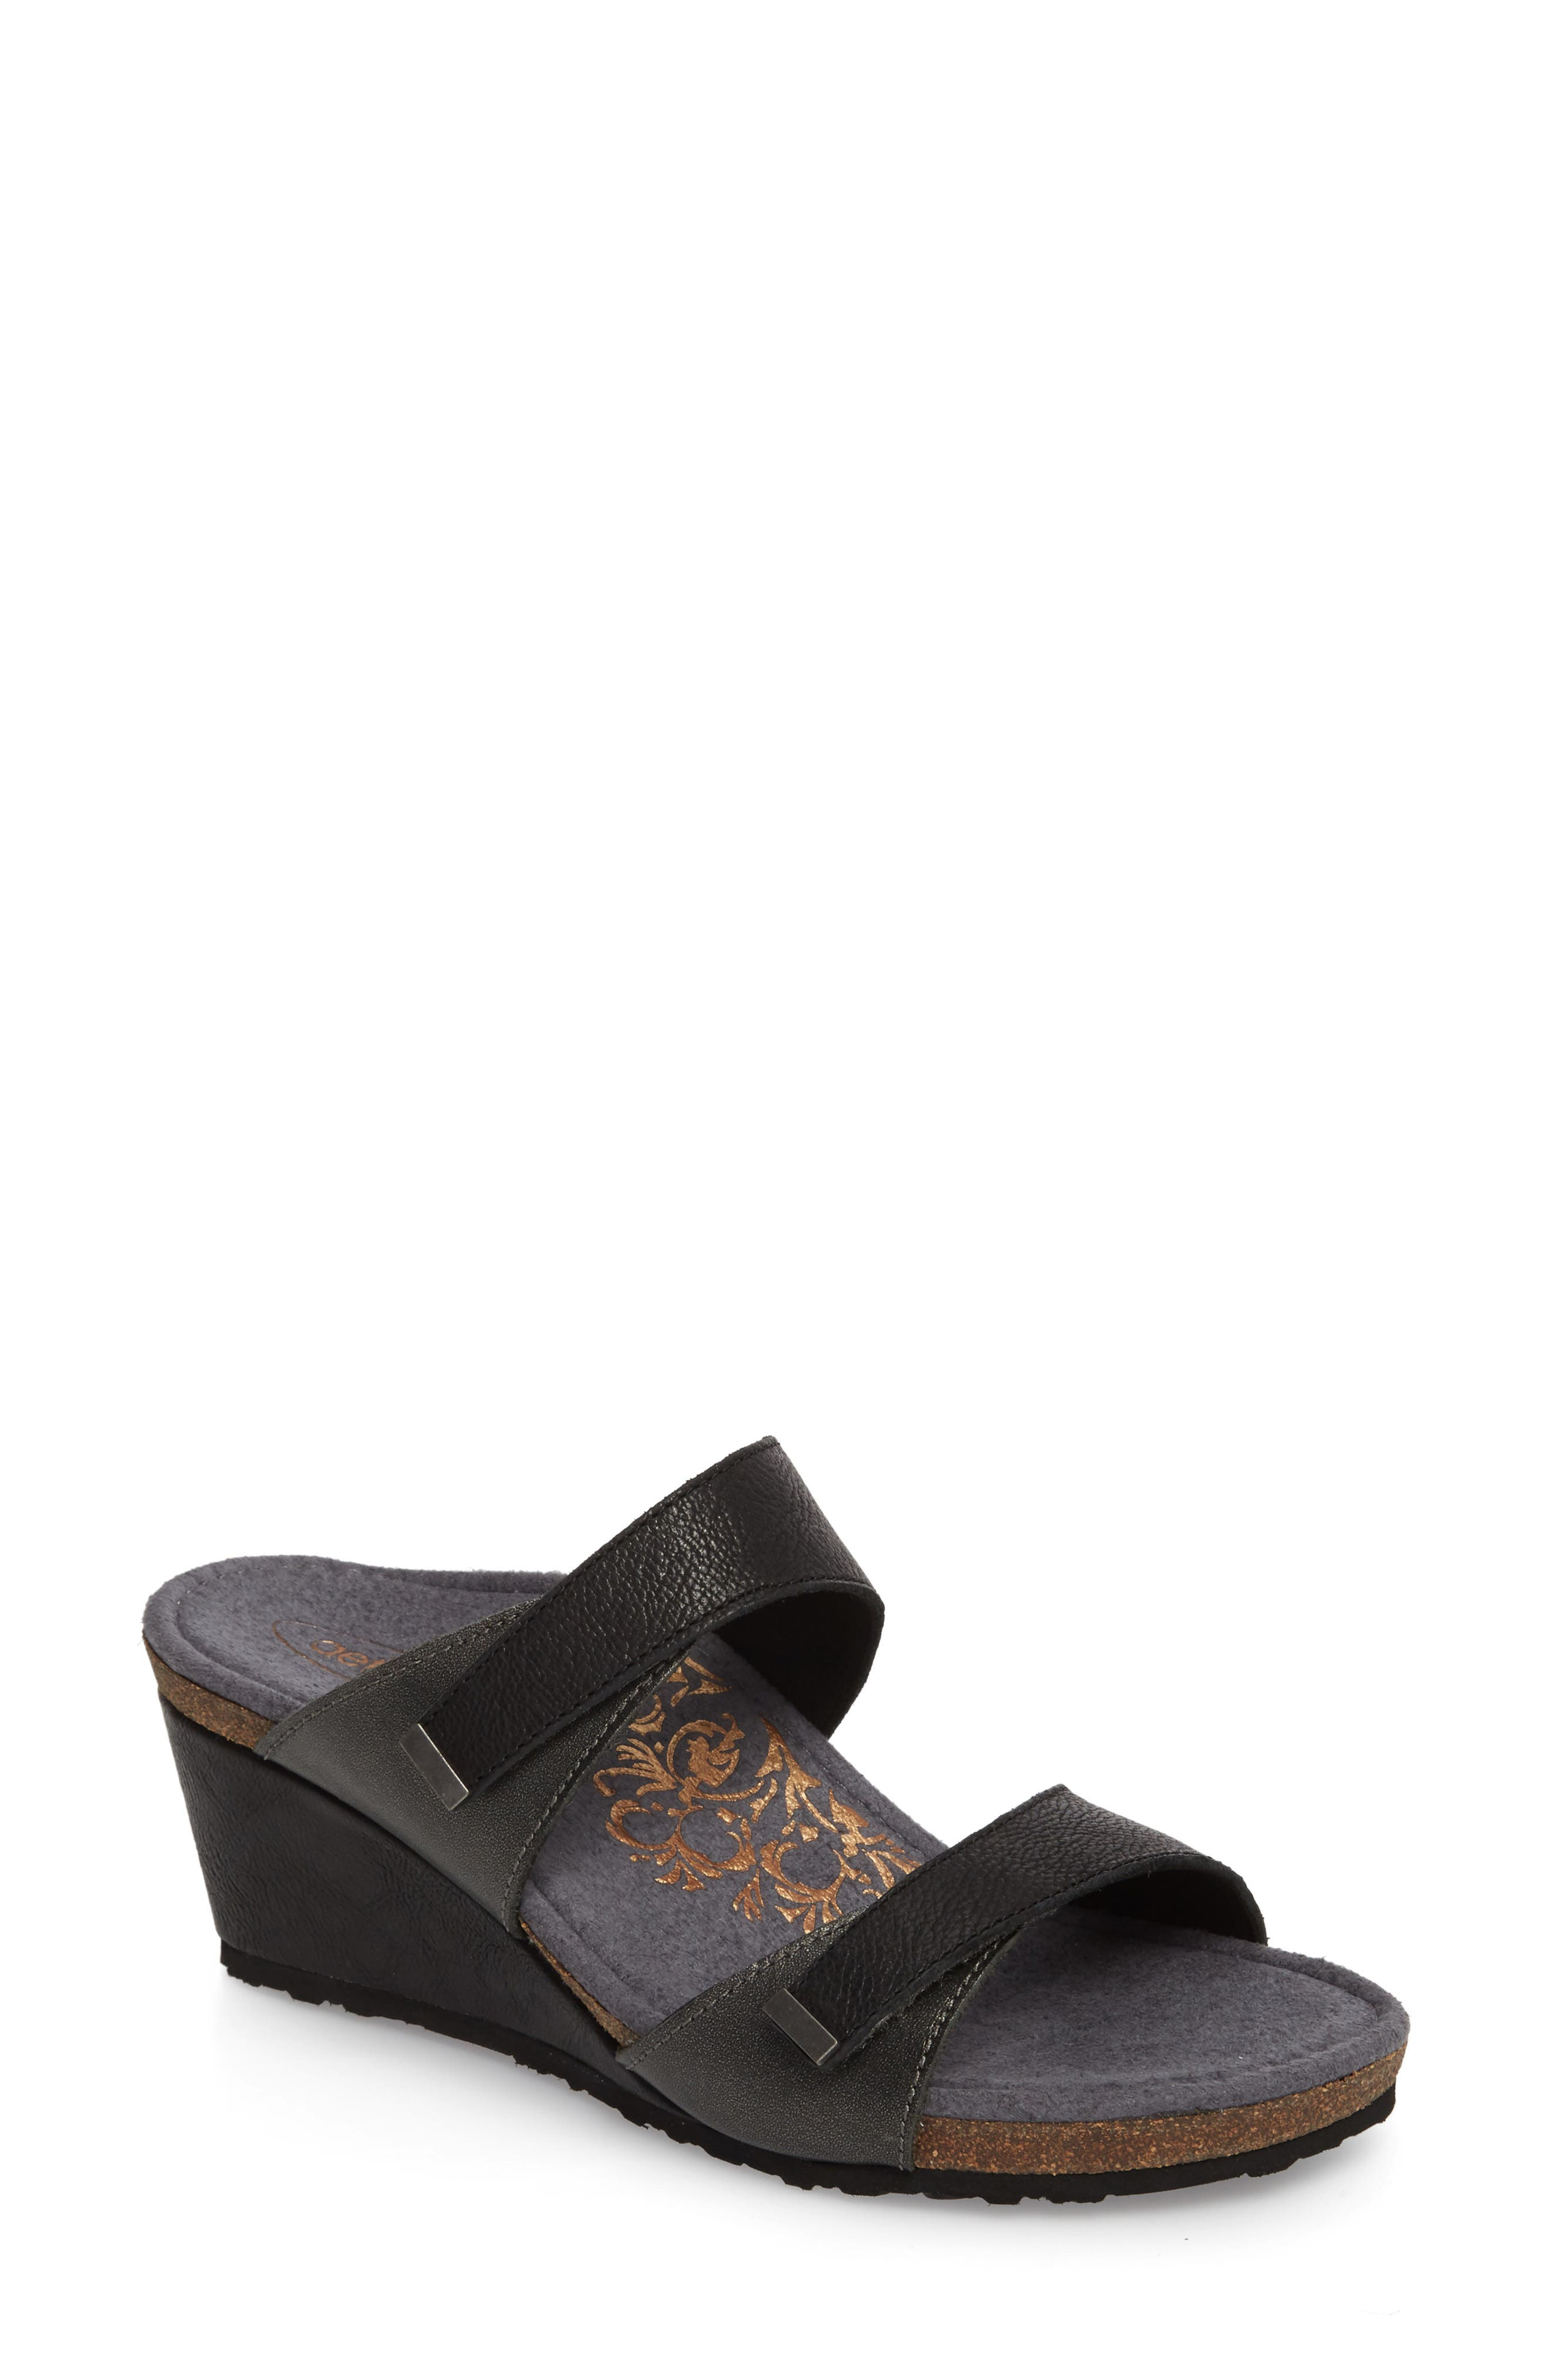 Chantel Wedge Sandal,                             Main thumbnail 1, color,                             Black Leather